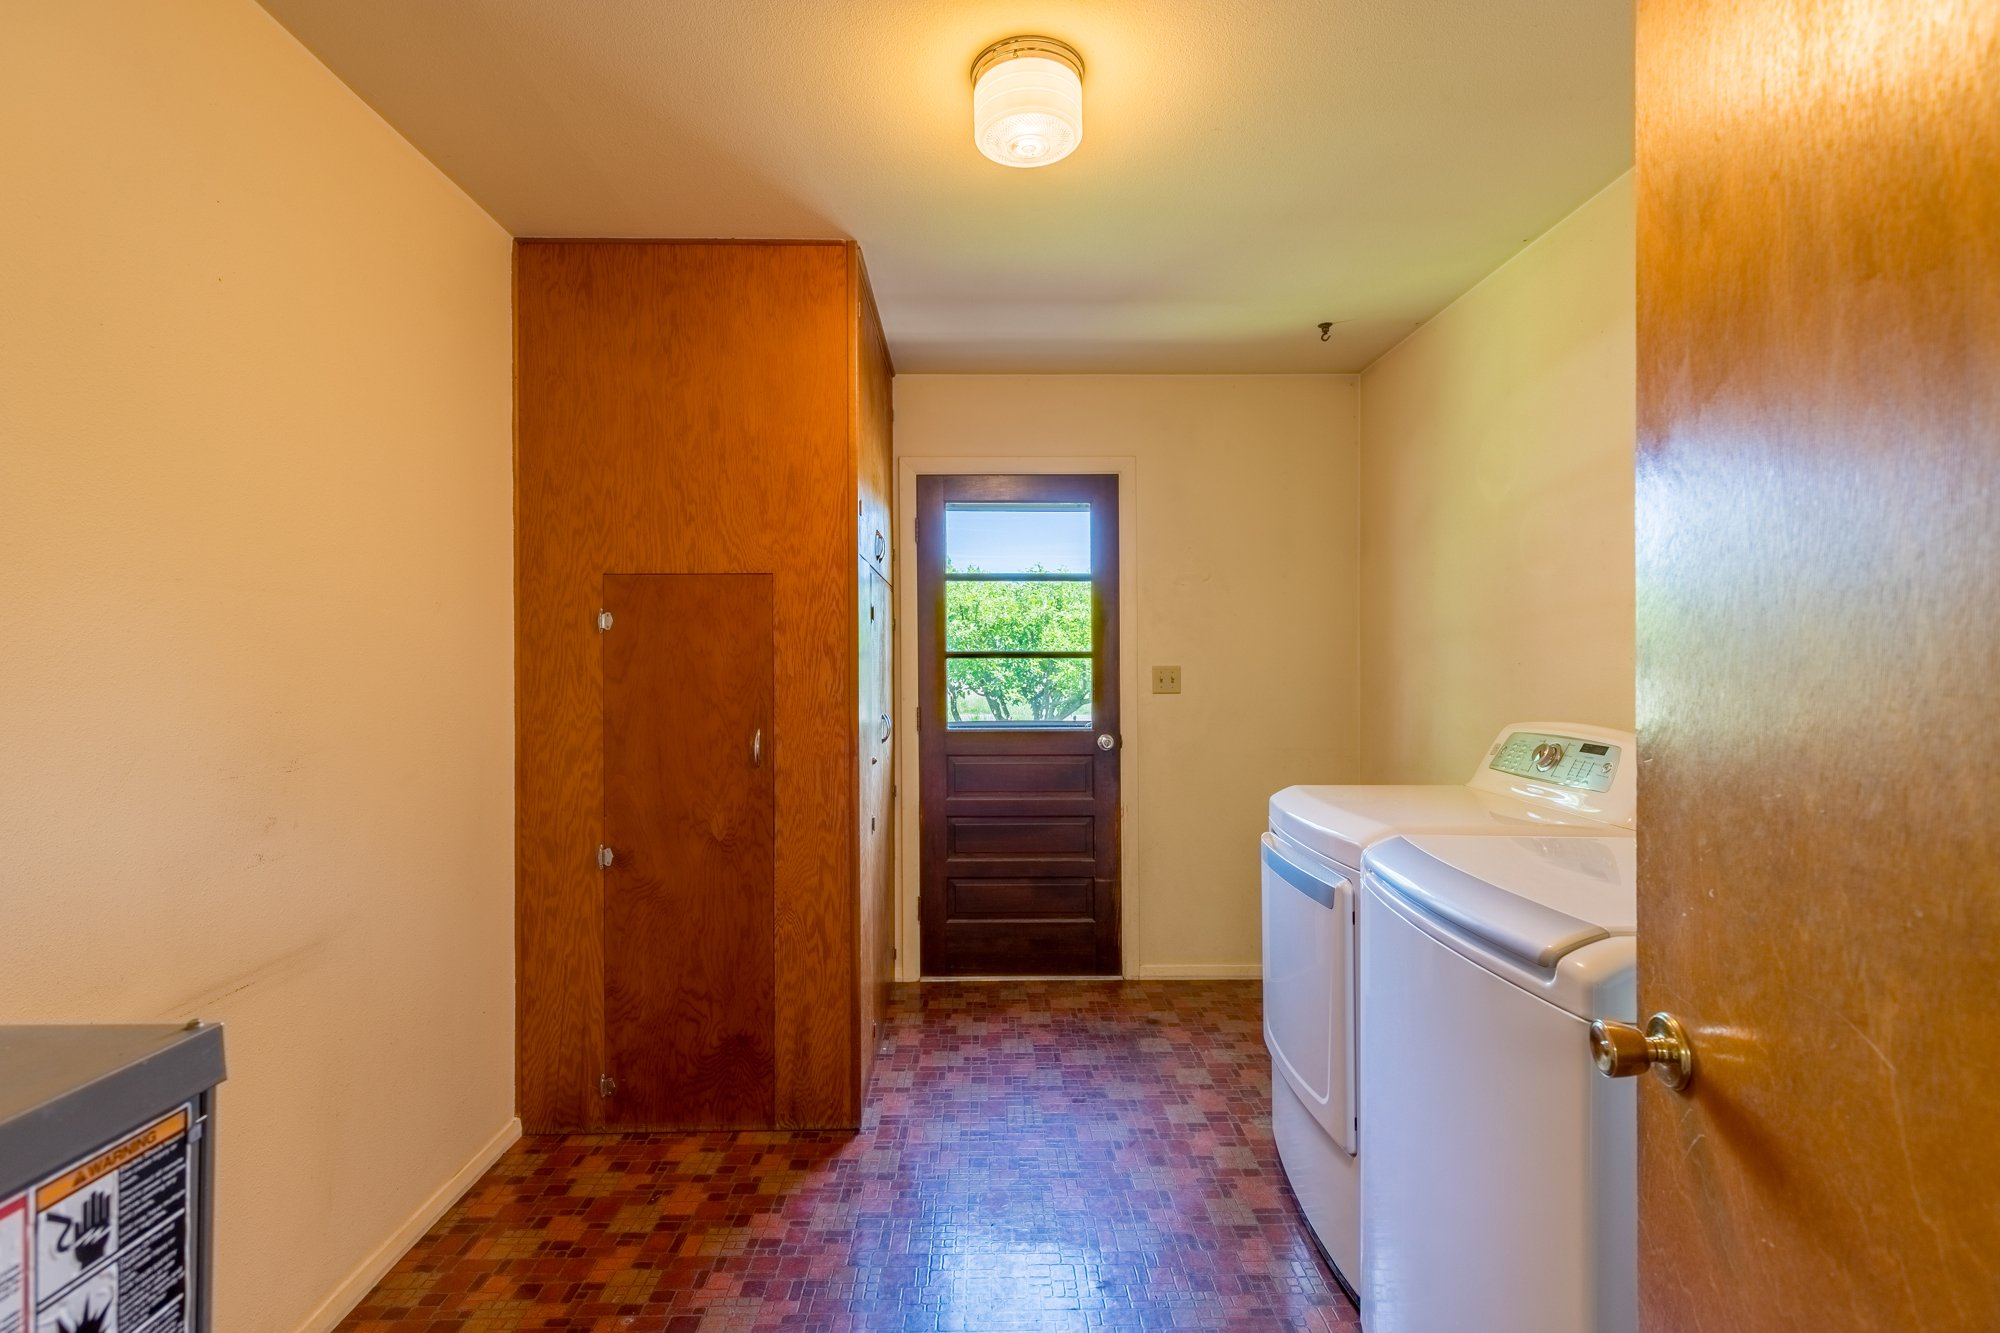 Laundry Room - 418 6400 Rd Montrose, CO 81403 - Atha Team Realty